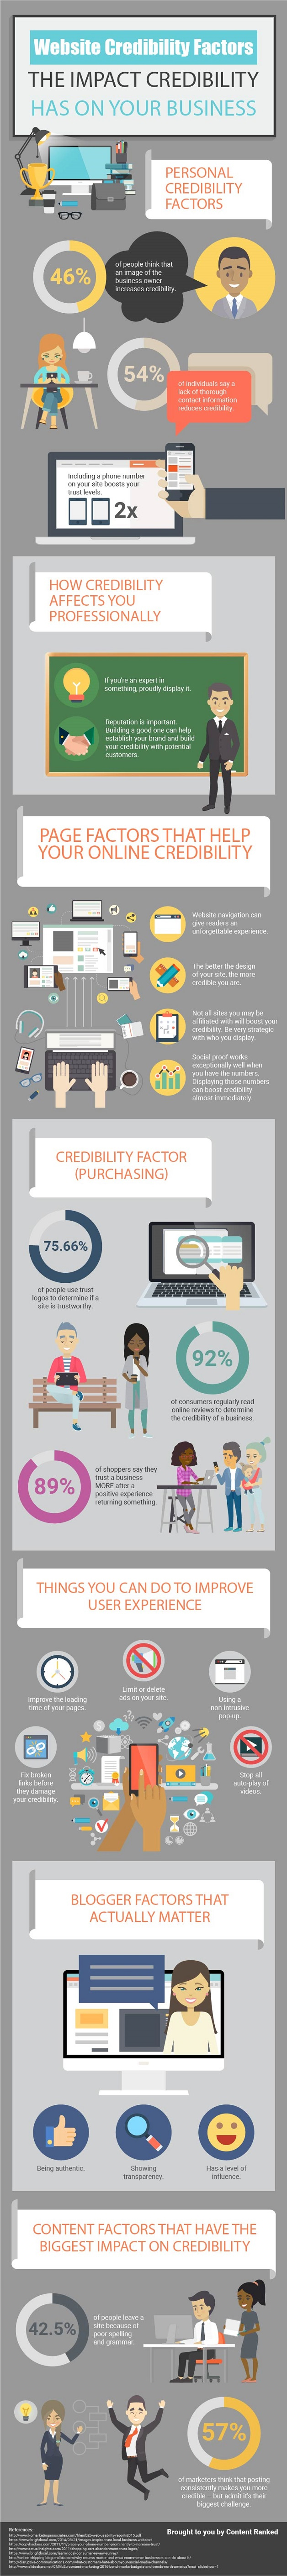 Do-Visitors-Trust-Your-Site-How-to-Improve-Website-Credibility